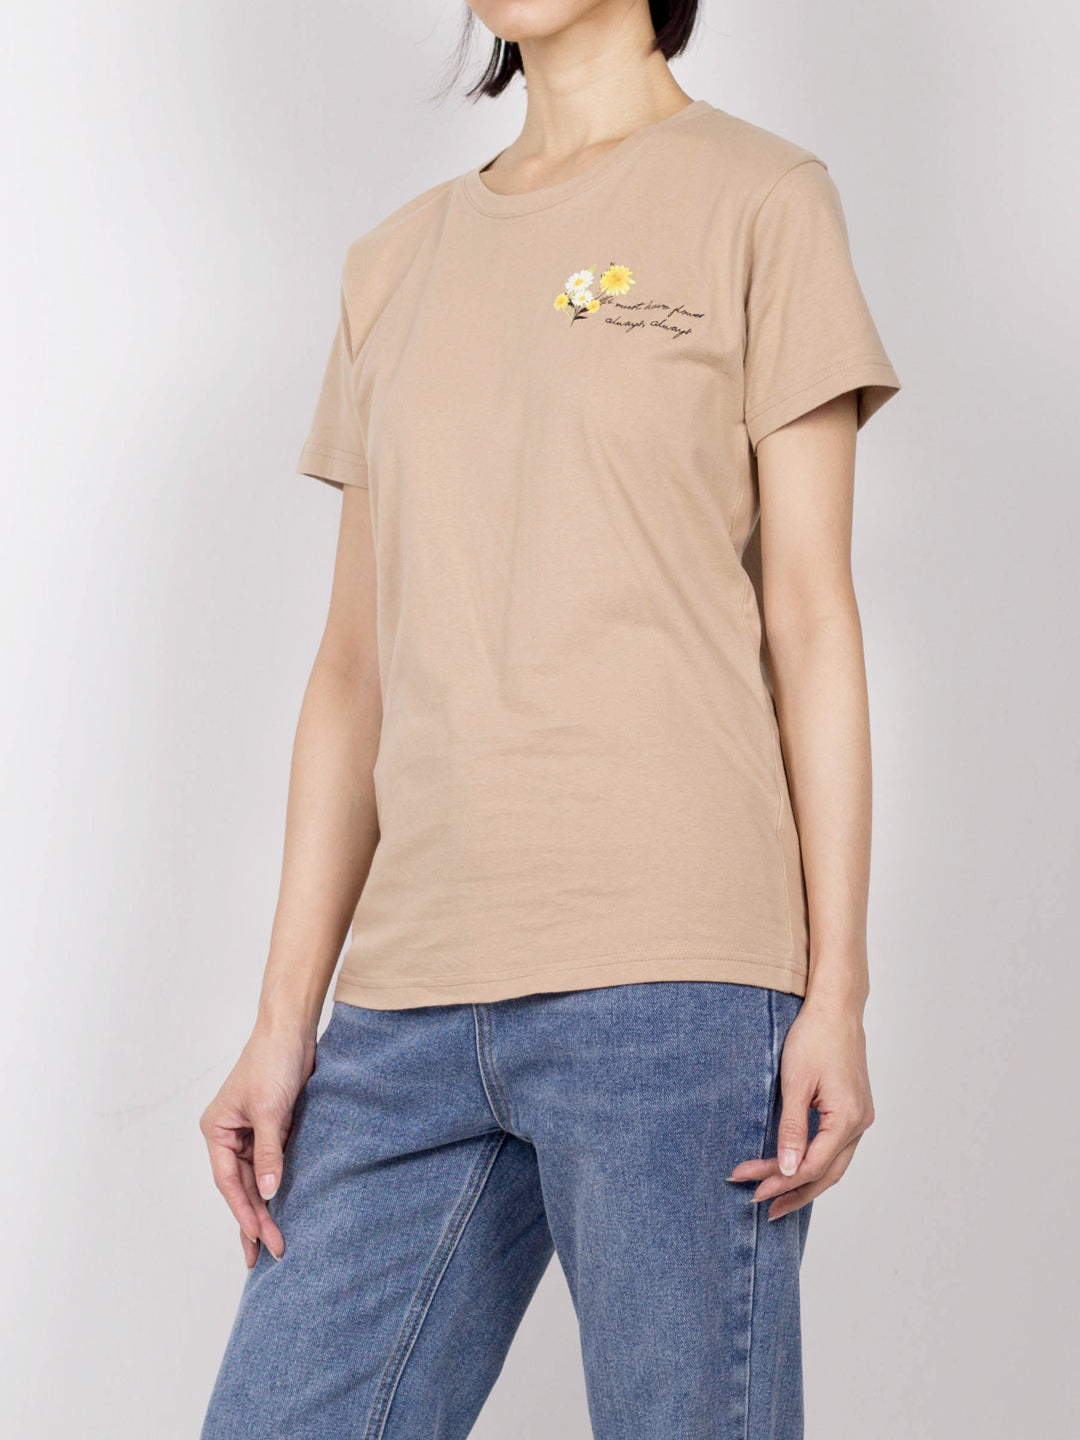 Women Graphic Short Sleeve T-Shirt - Khaki